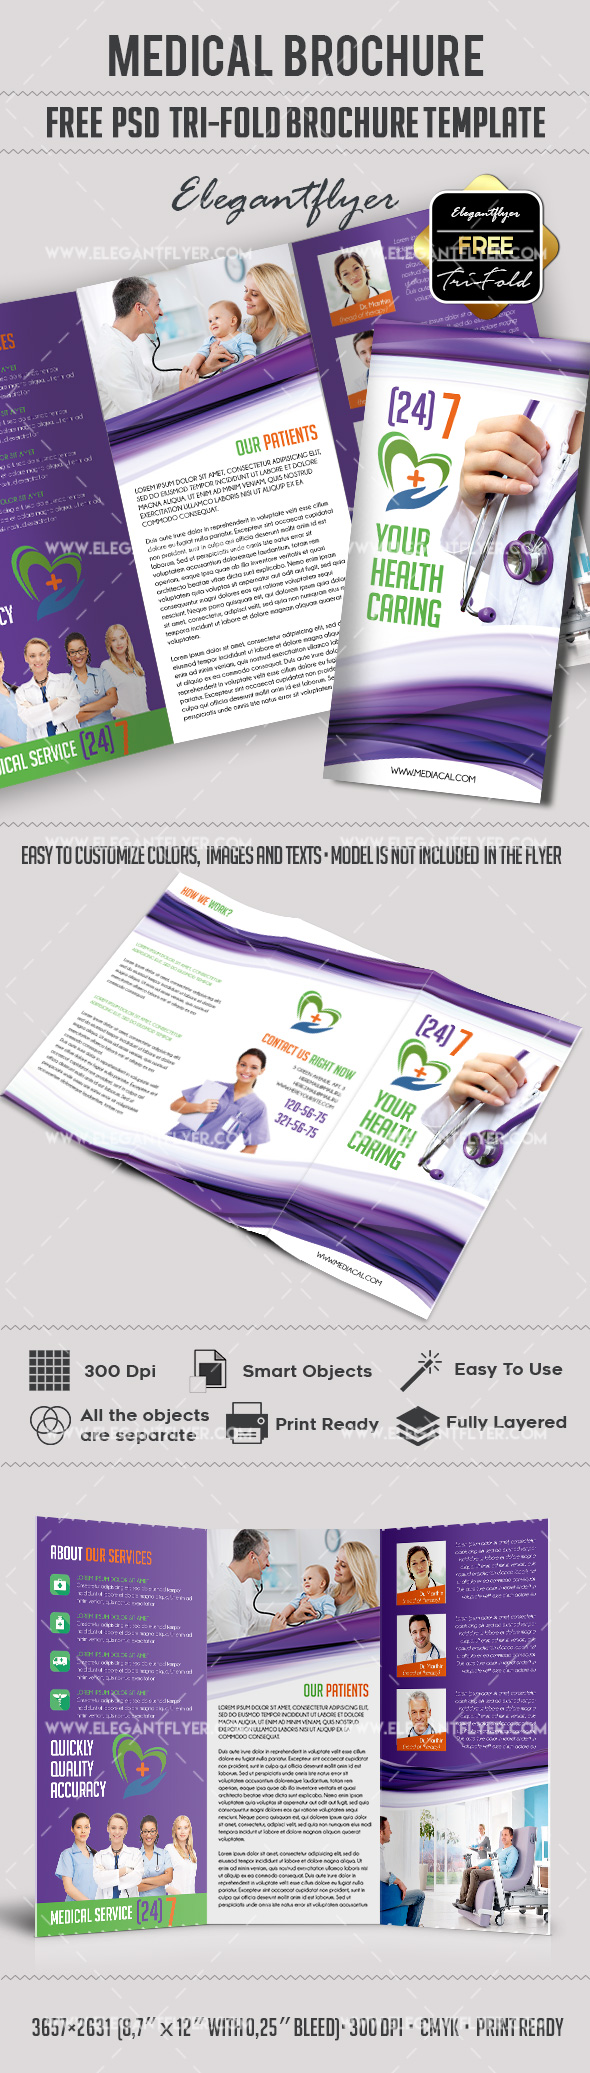 Medical free tri fold psd brochure template by for Free flyer brochure templates